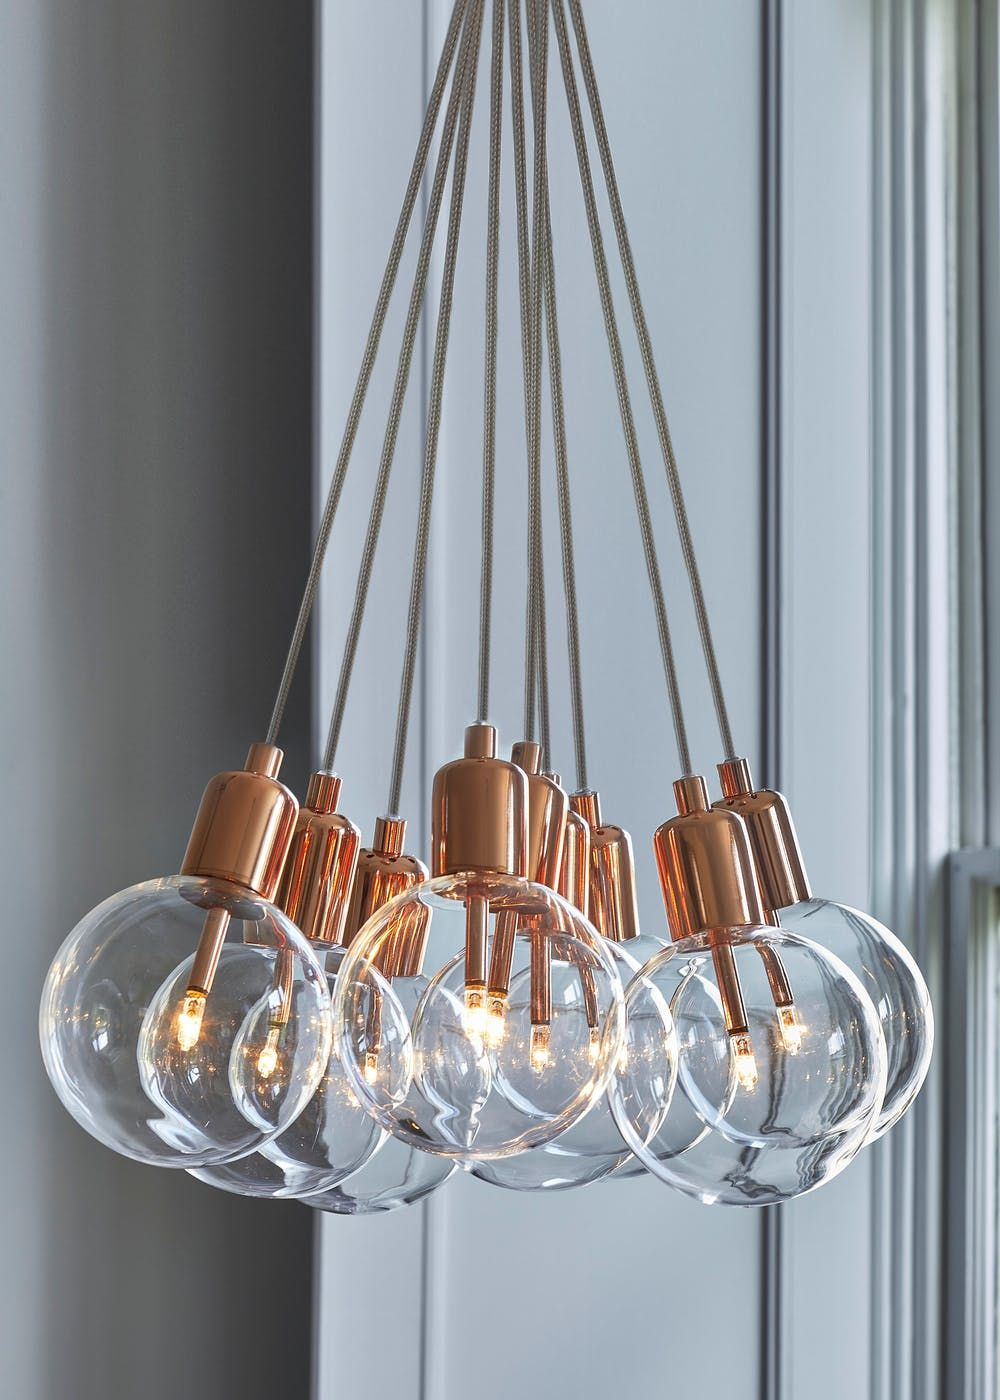 Byron Copper Cluster Light H81cm 51cm X W32cm Copper Cluster Lights Bedroom Light